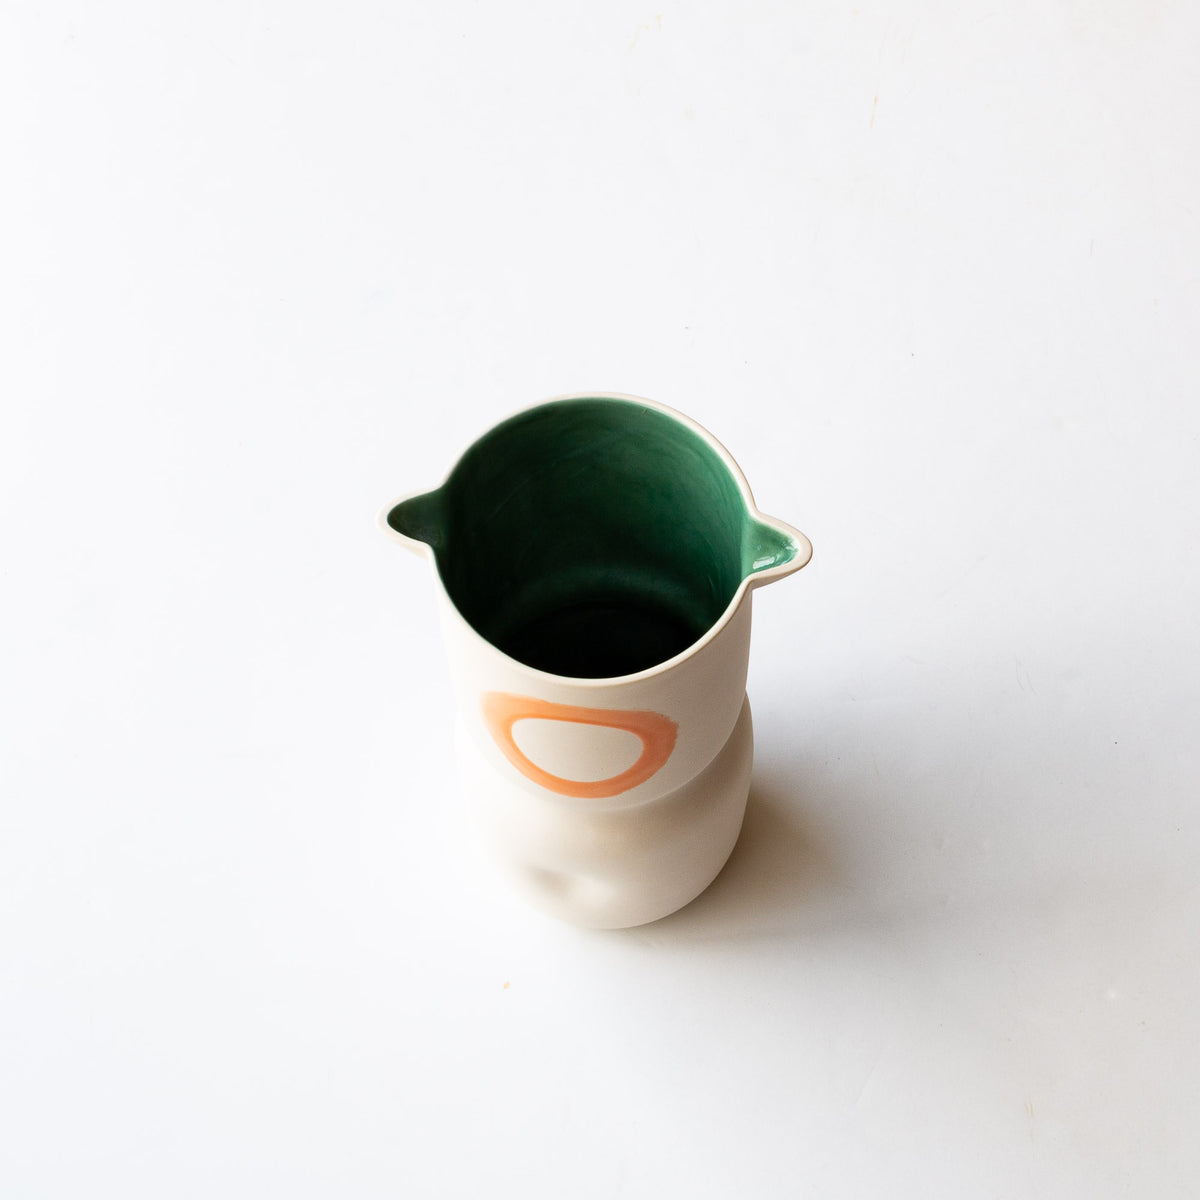 Top View - Handmade Porcelain Vase / Wine Cooler - Sold by Chic & Basta